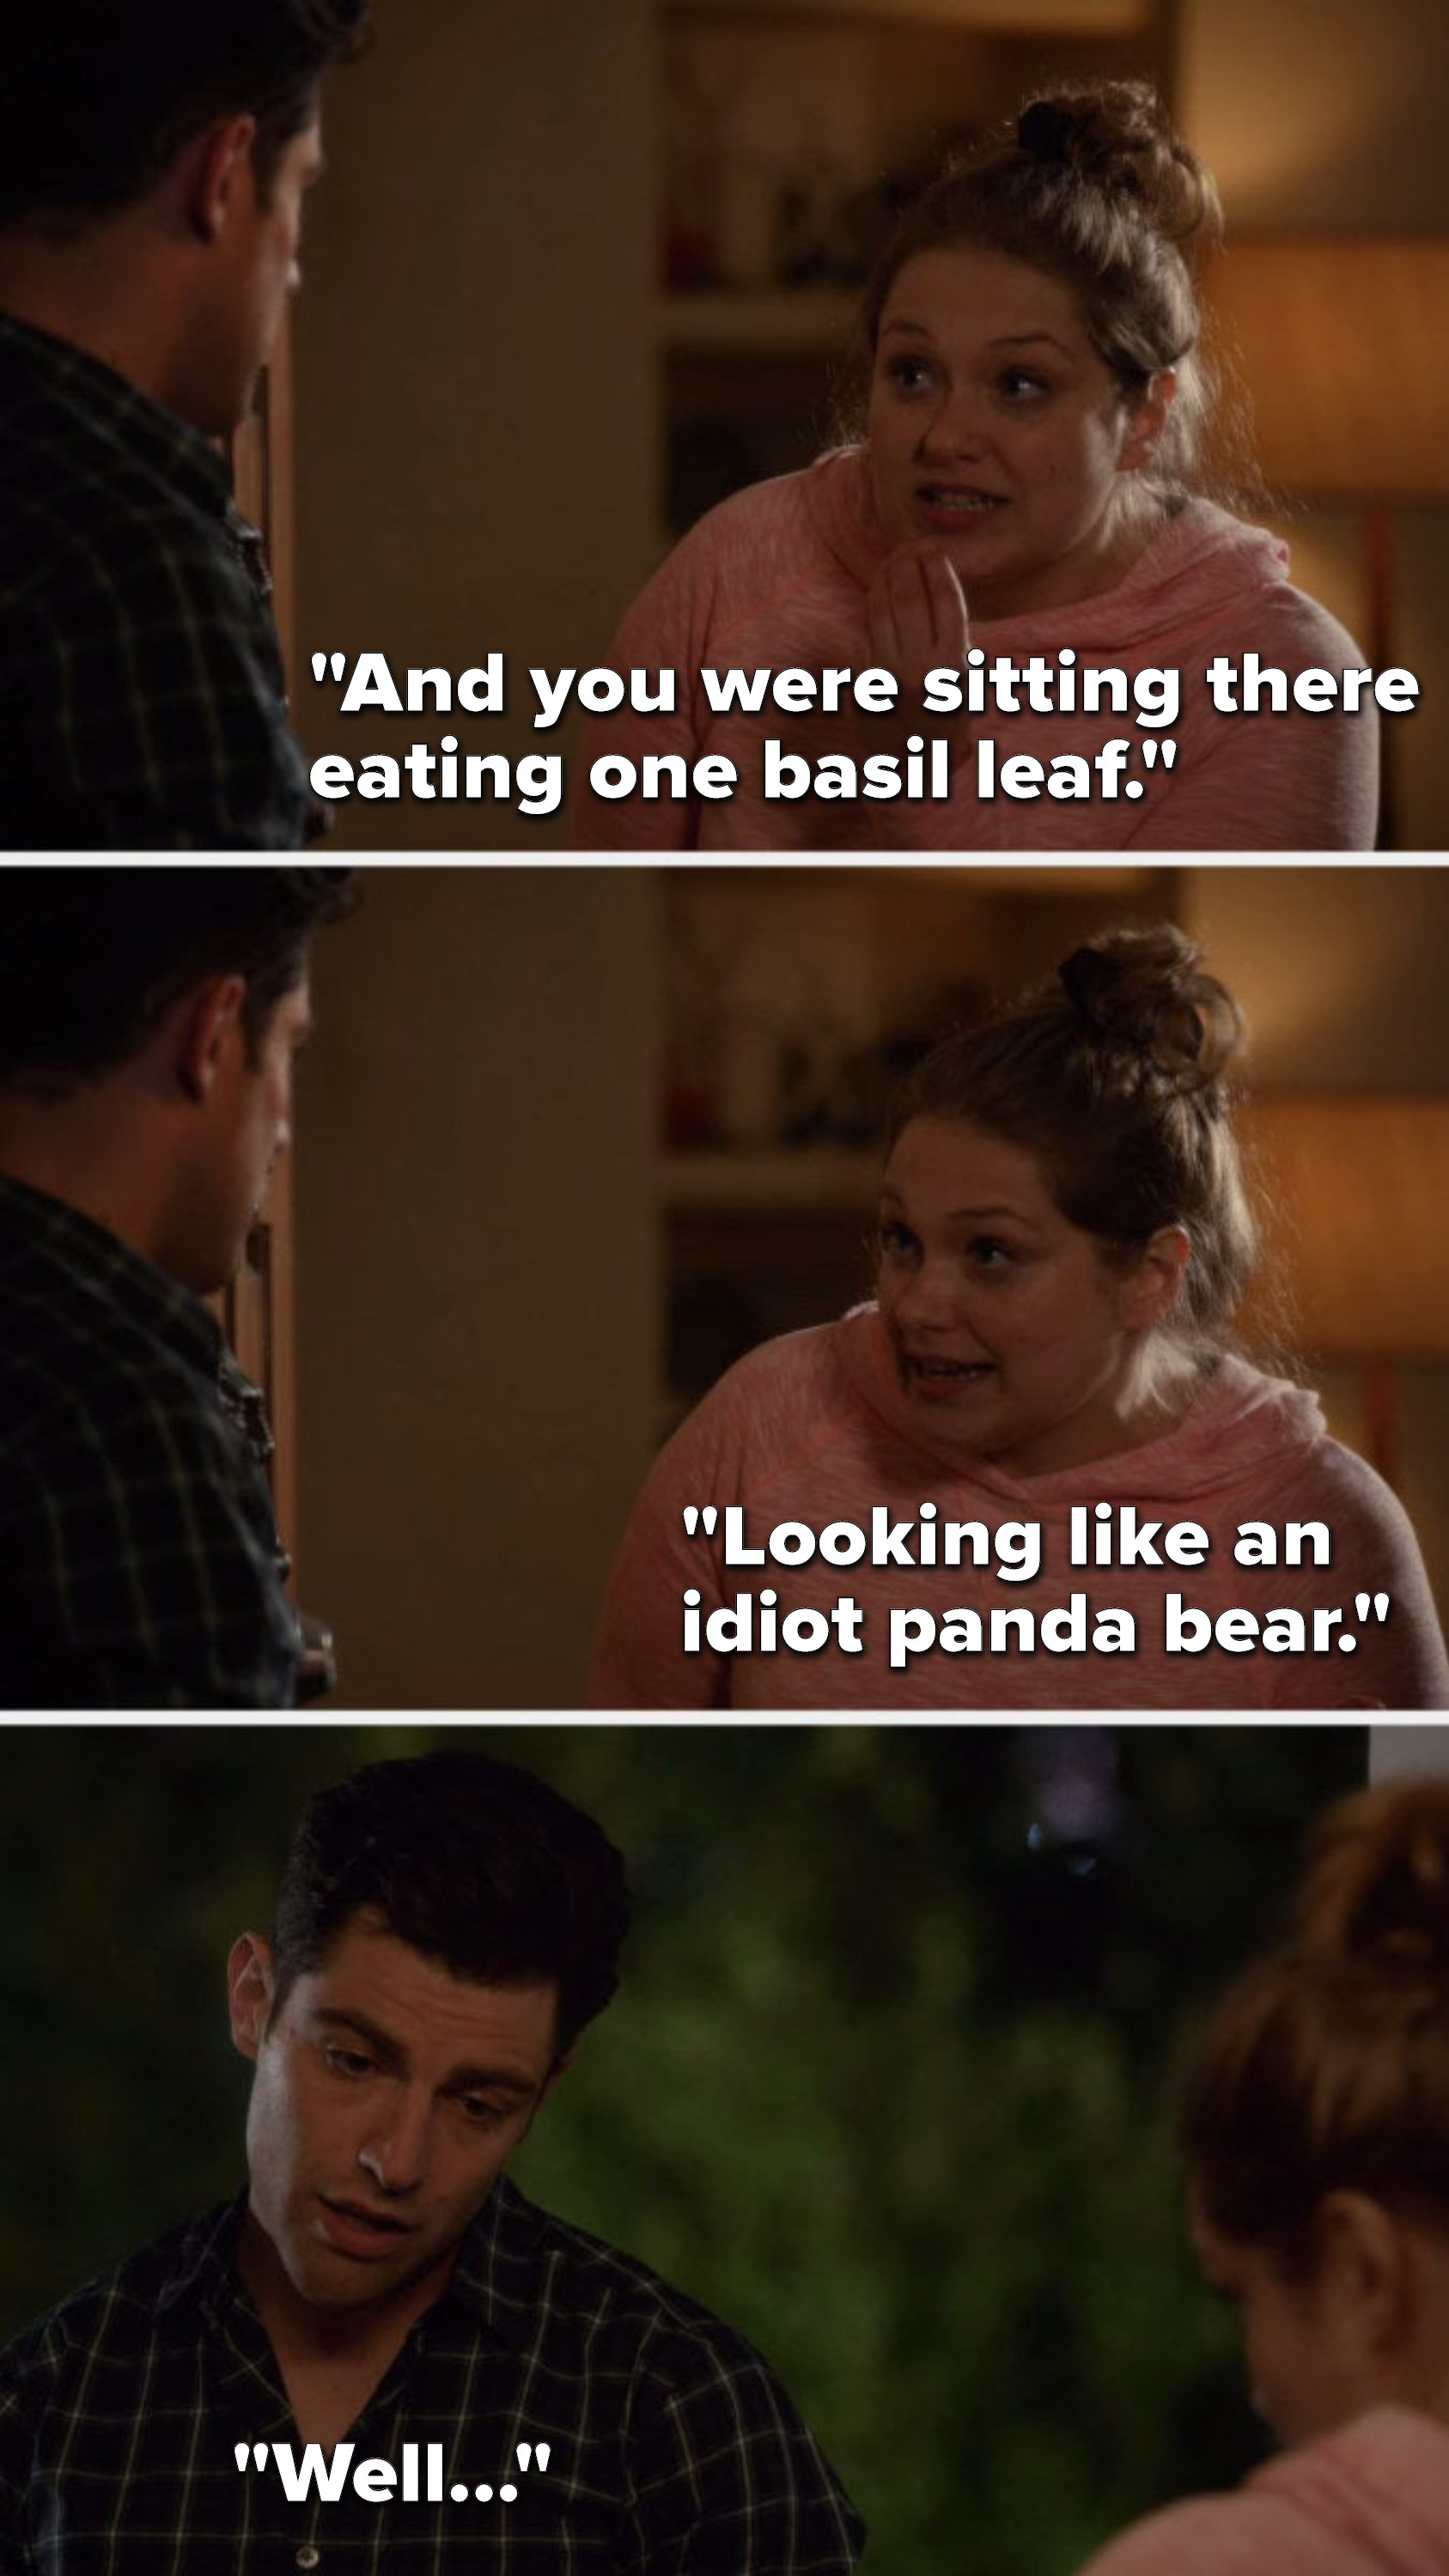 """Elizabeth says, """"And you were sitting there eating one basil leaf, looking like an idiot panda bear,"""" and Schmidt says, """"Well"""""""